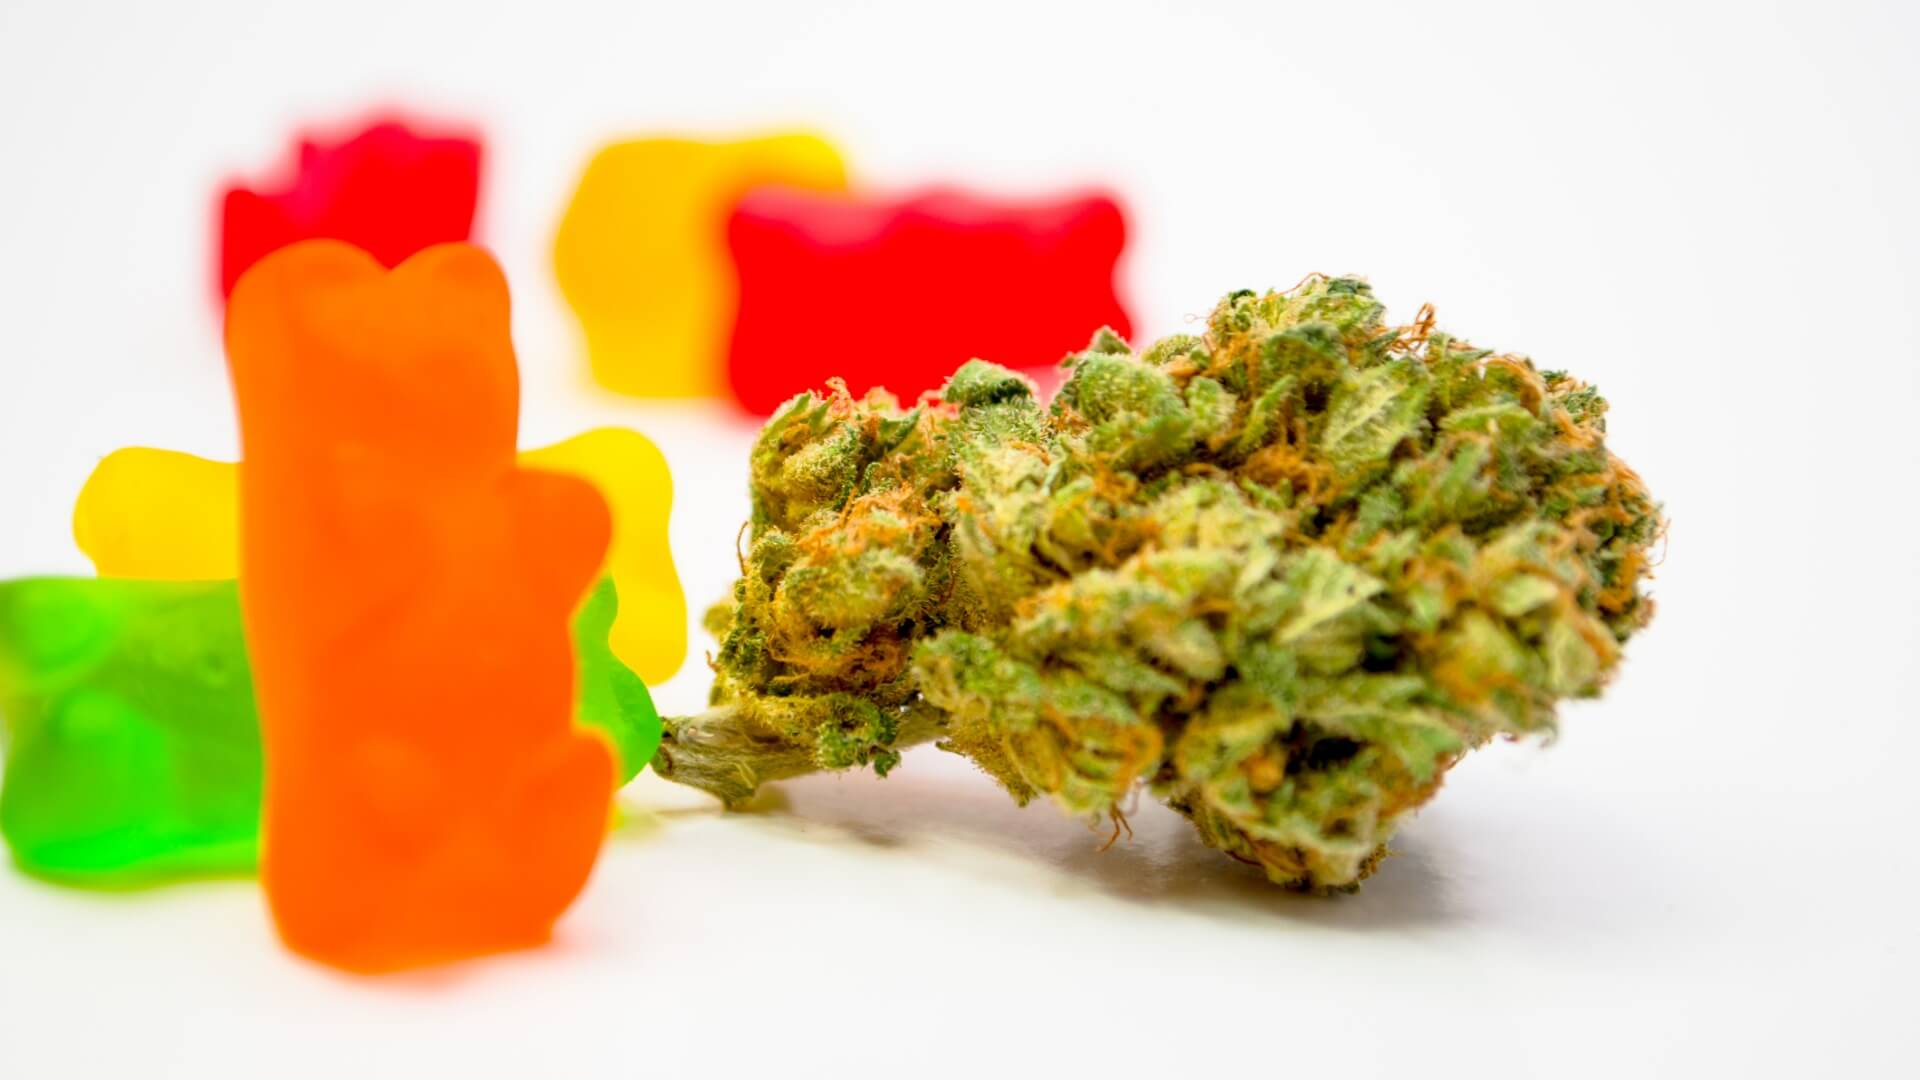 CBD Gummies: Which Ones Are The Best? - Wikileaf